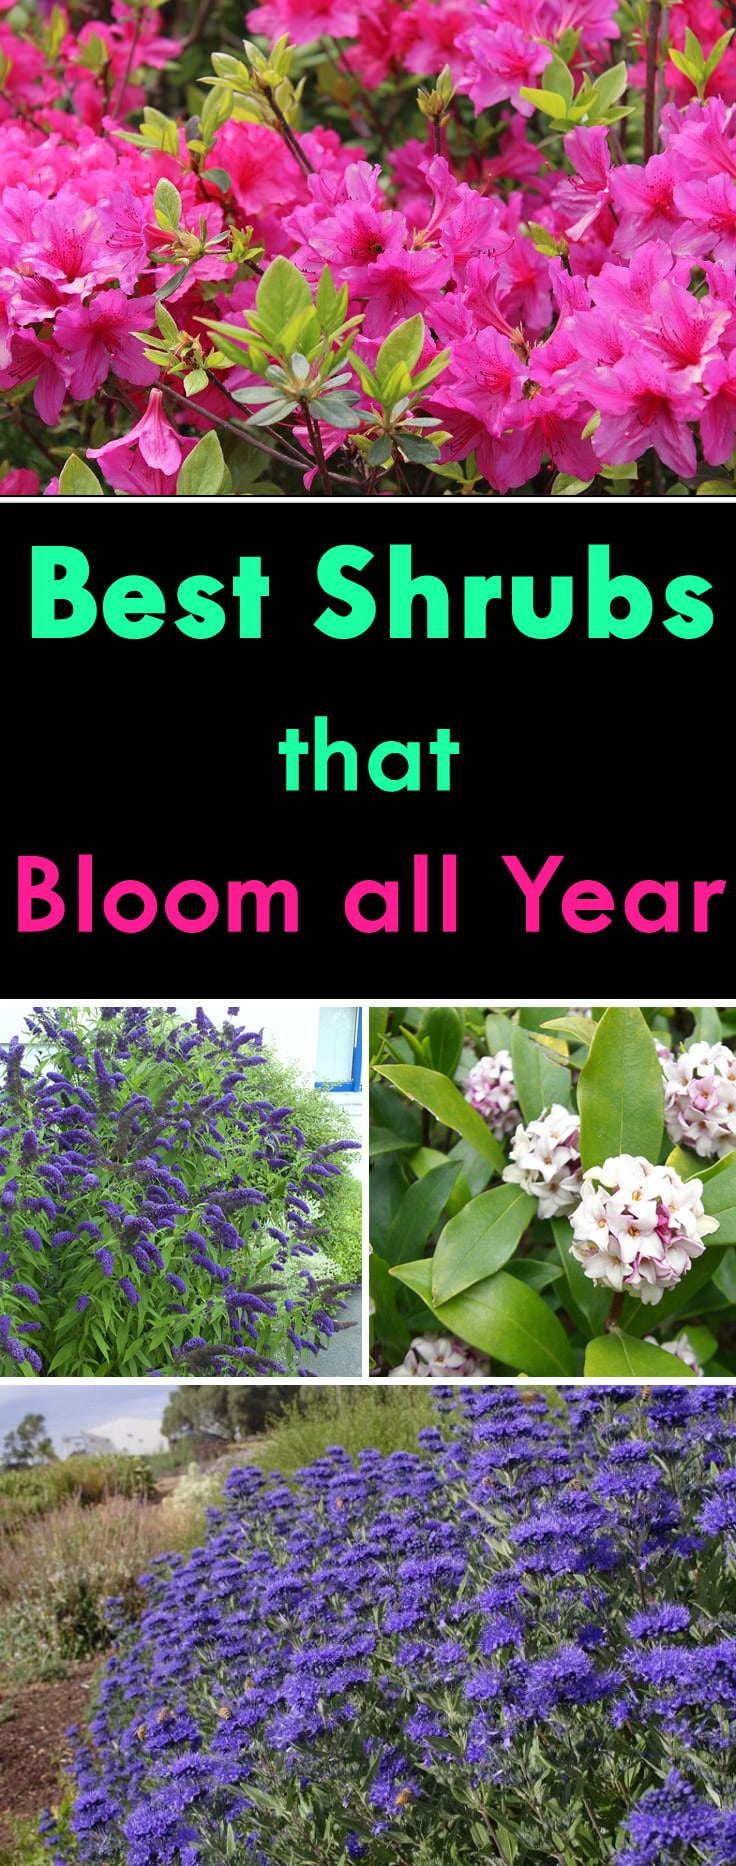 Shrubs that bloom all year year round shrubs according for Ornamental grasses that stay green all year